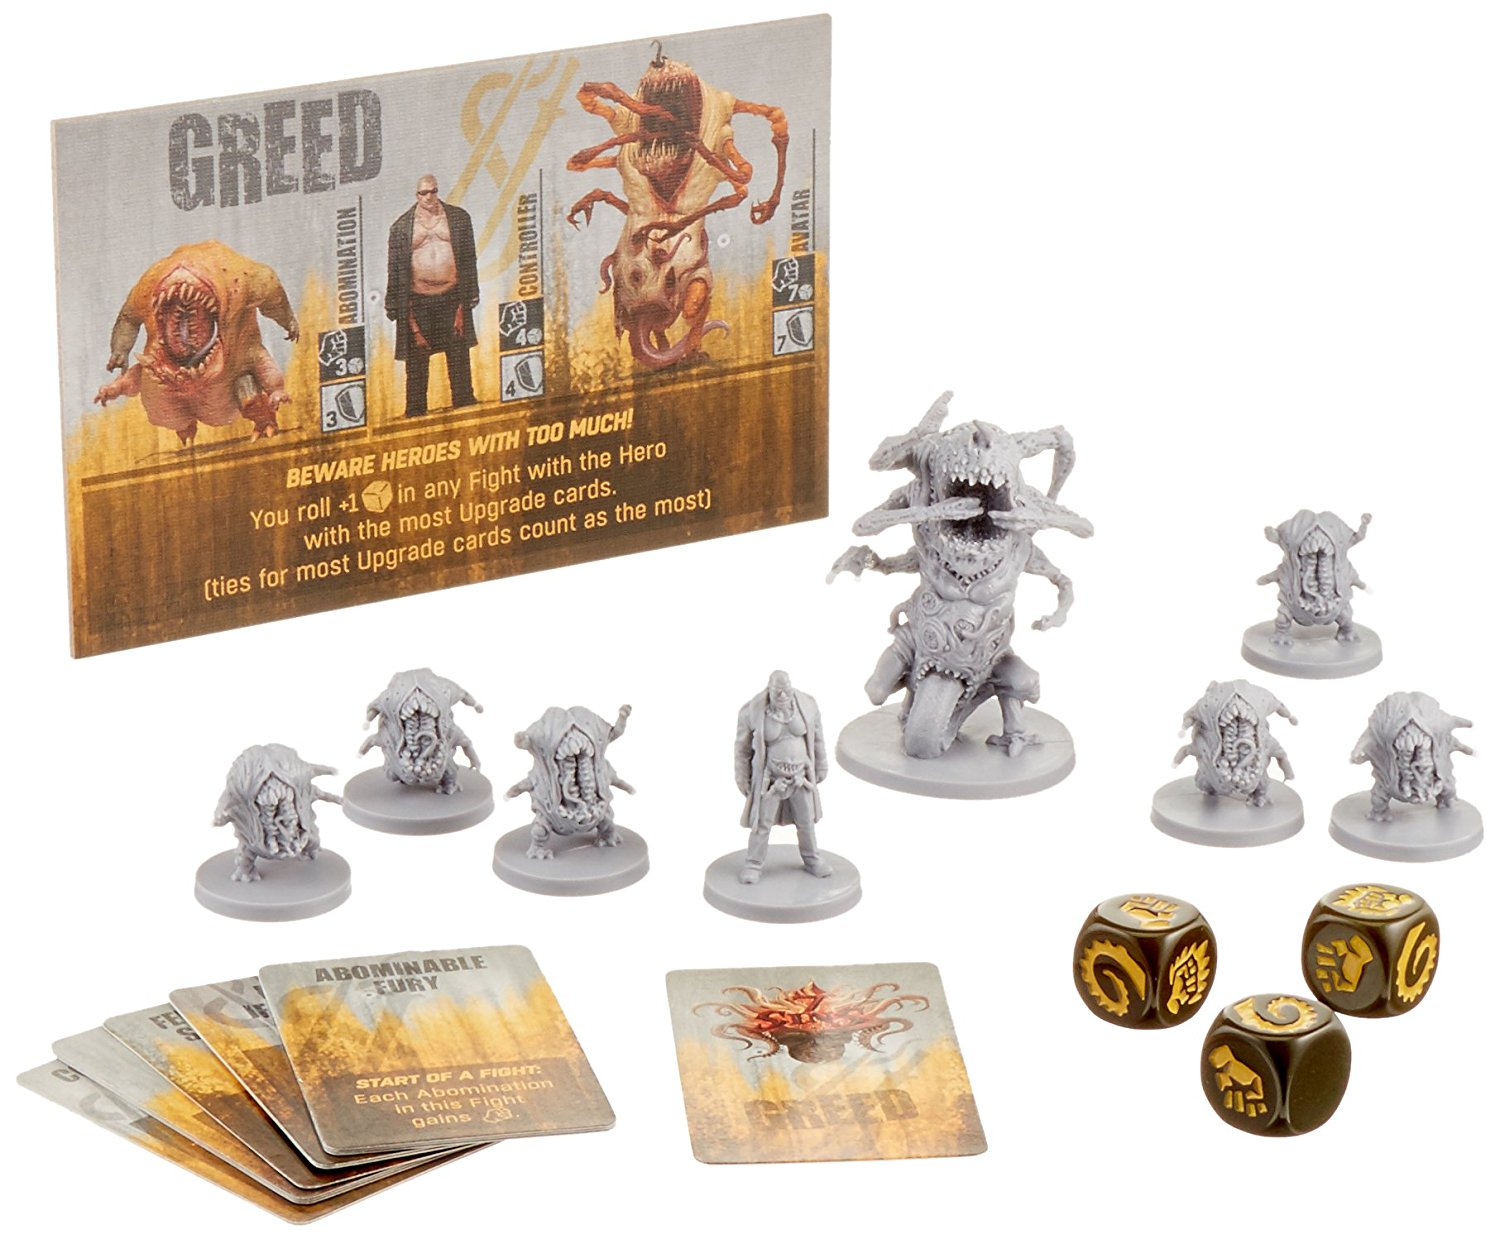 The Others: GREED Expansion set